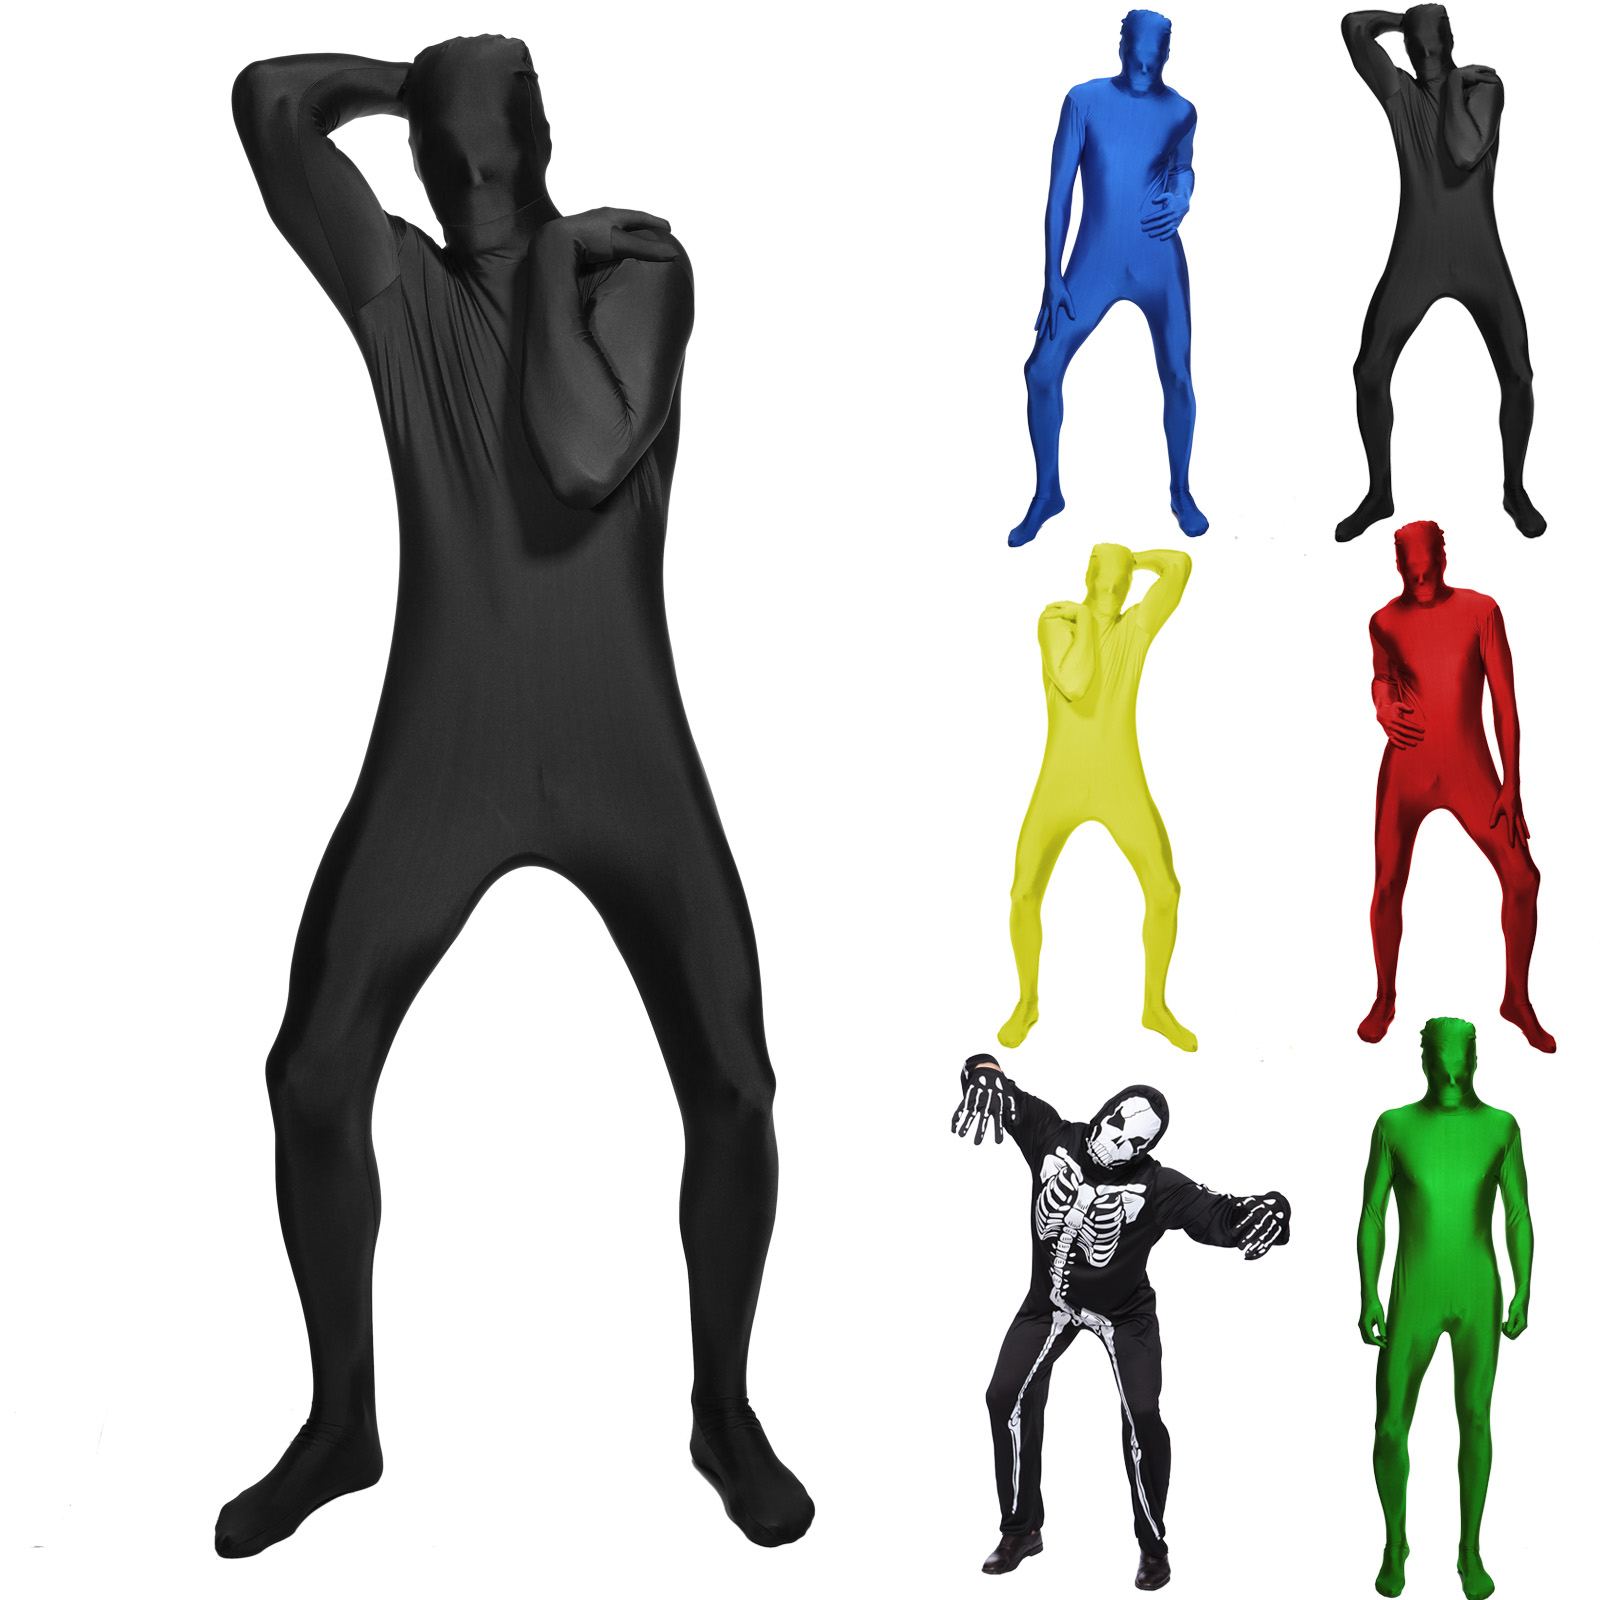 Full body spandex suit consider